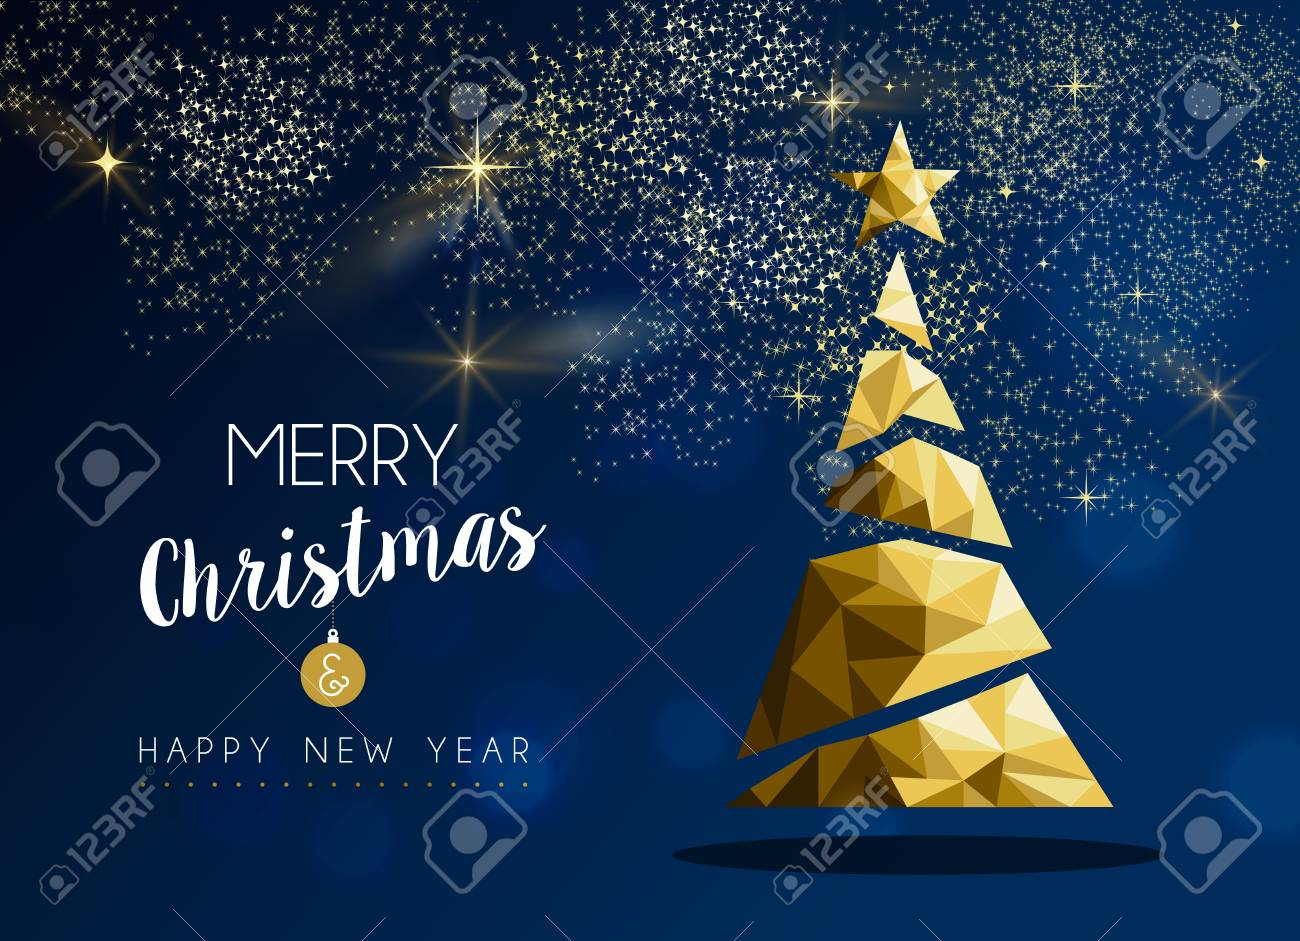 Merry christmas and happy new year gold pine tree in hipster triangle low poly style on blue background. Xmas greeting card or elegant holiday party invitation. - 114114315